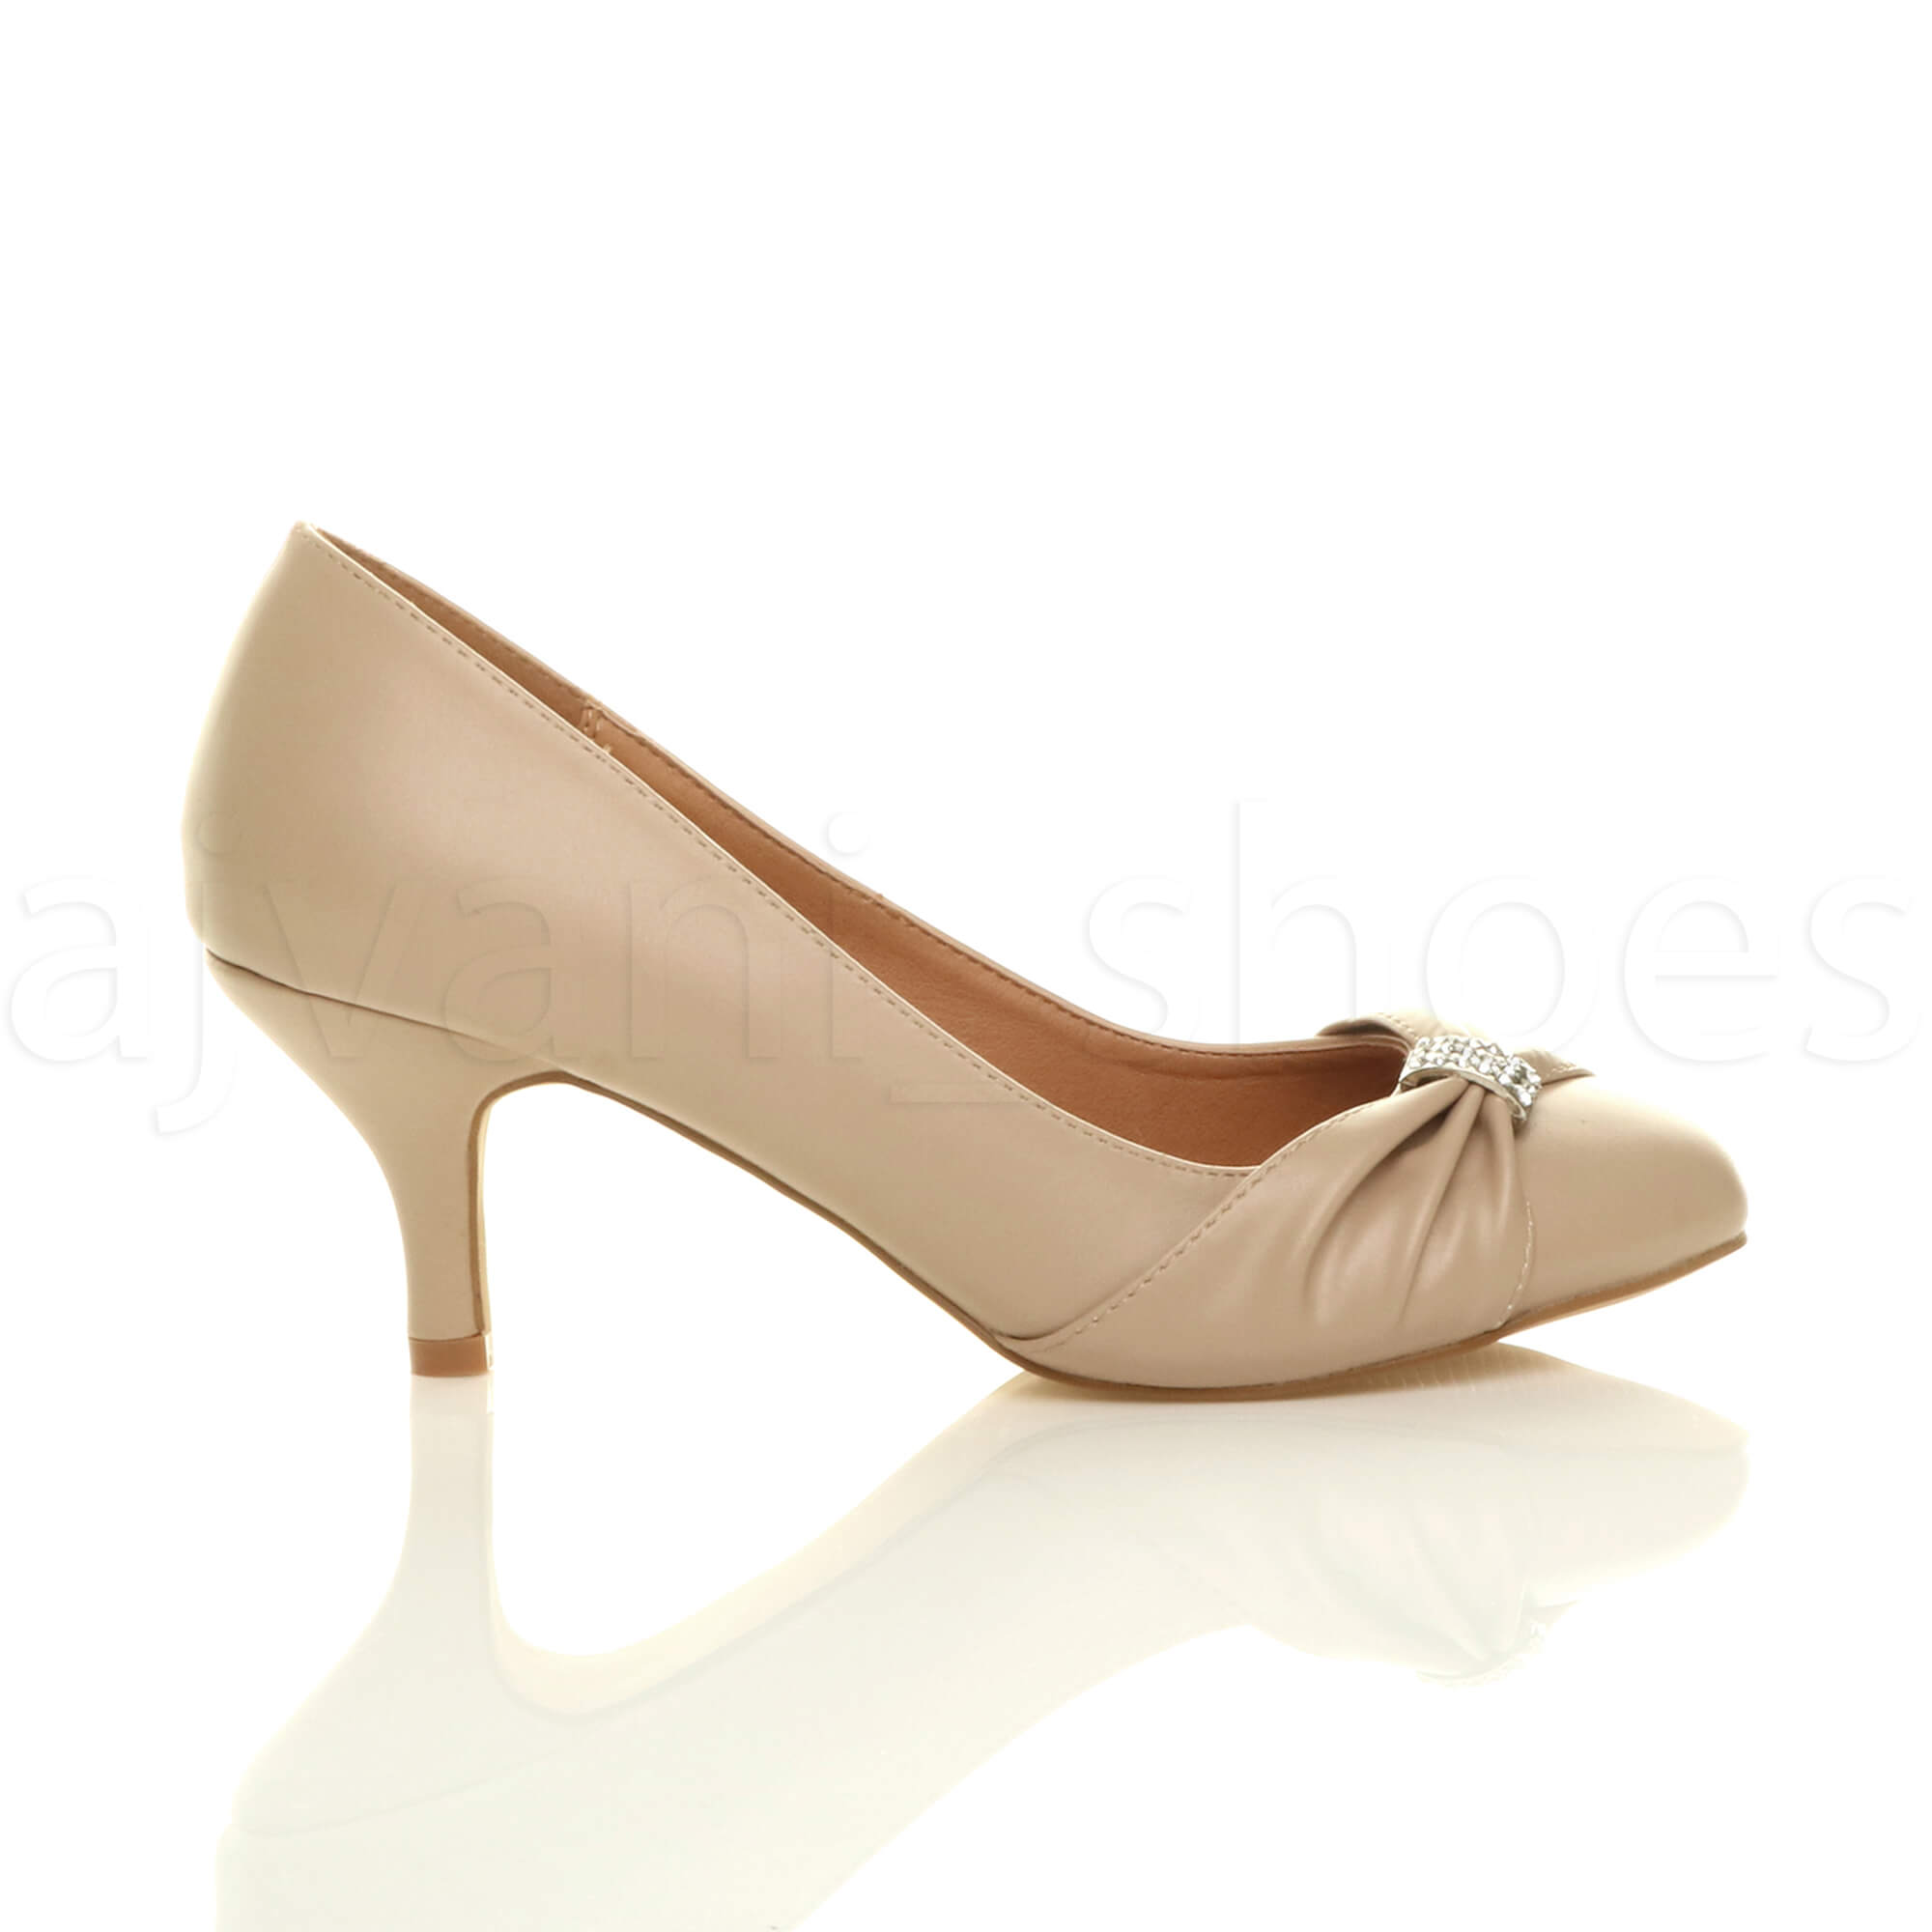 WOMENS-LADIES-MID-HEEL-RUCHED-DIAMANTE-WEDDING-PROM-EVENING-COURT-SHOES-SIZE thumbnail 59